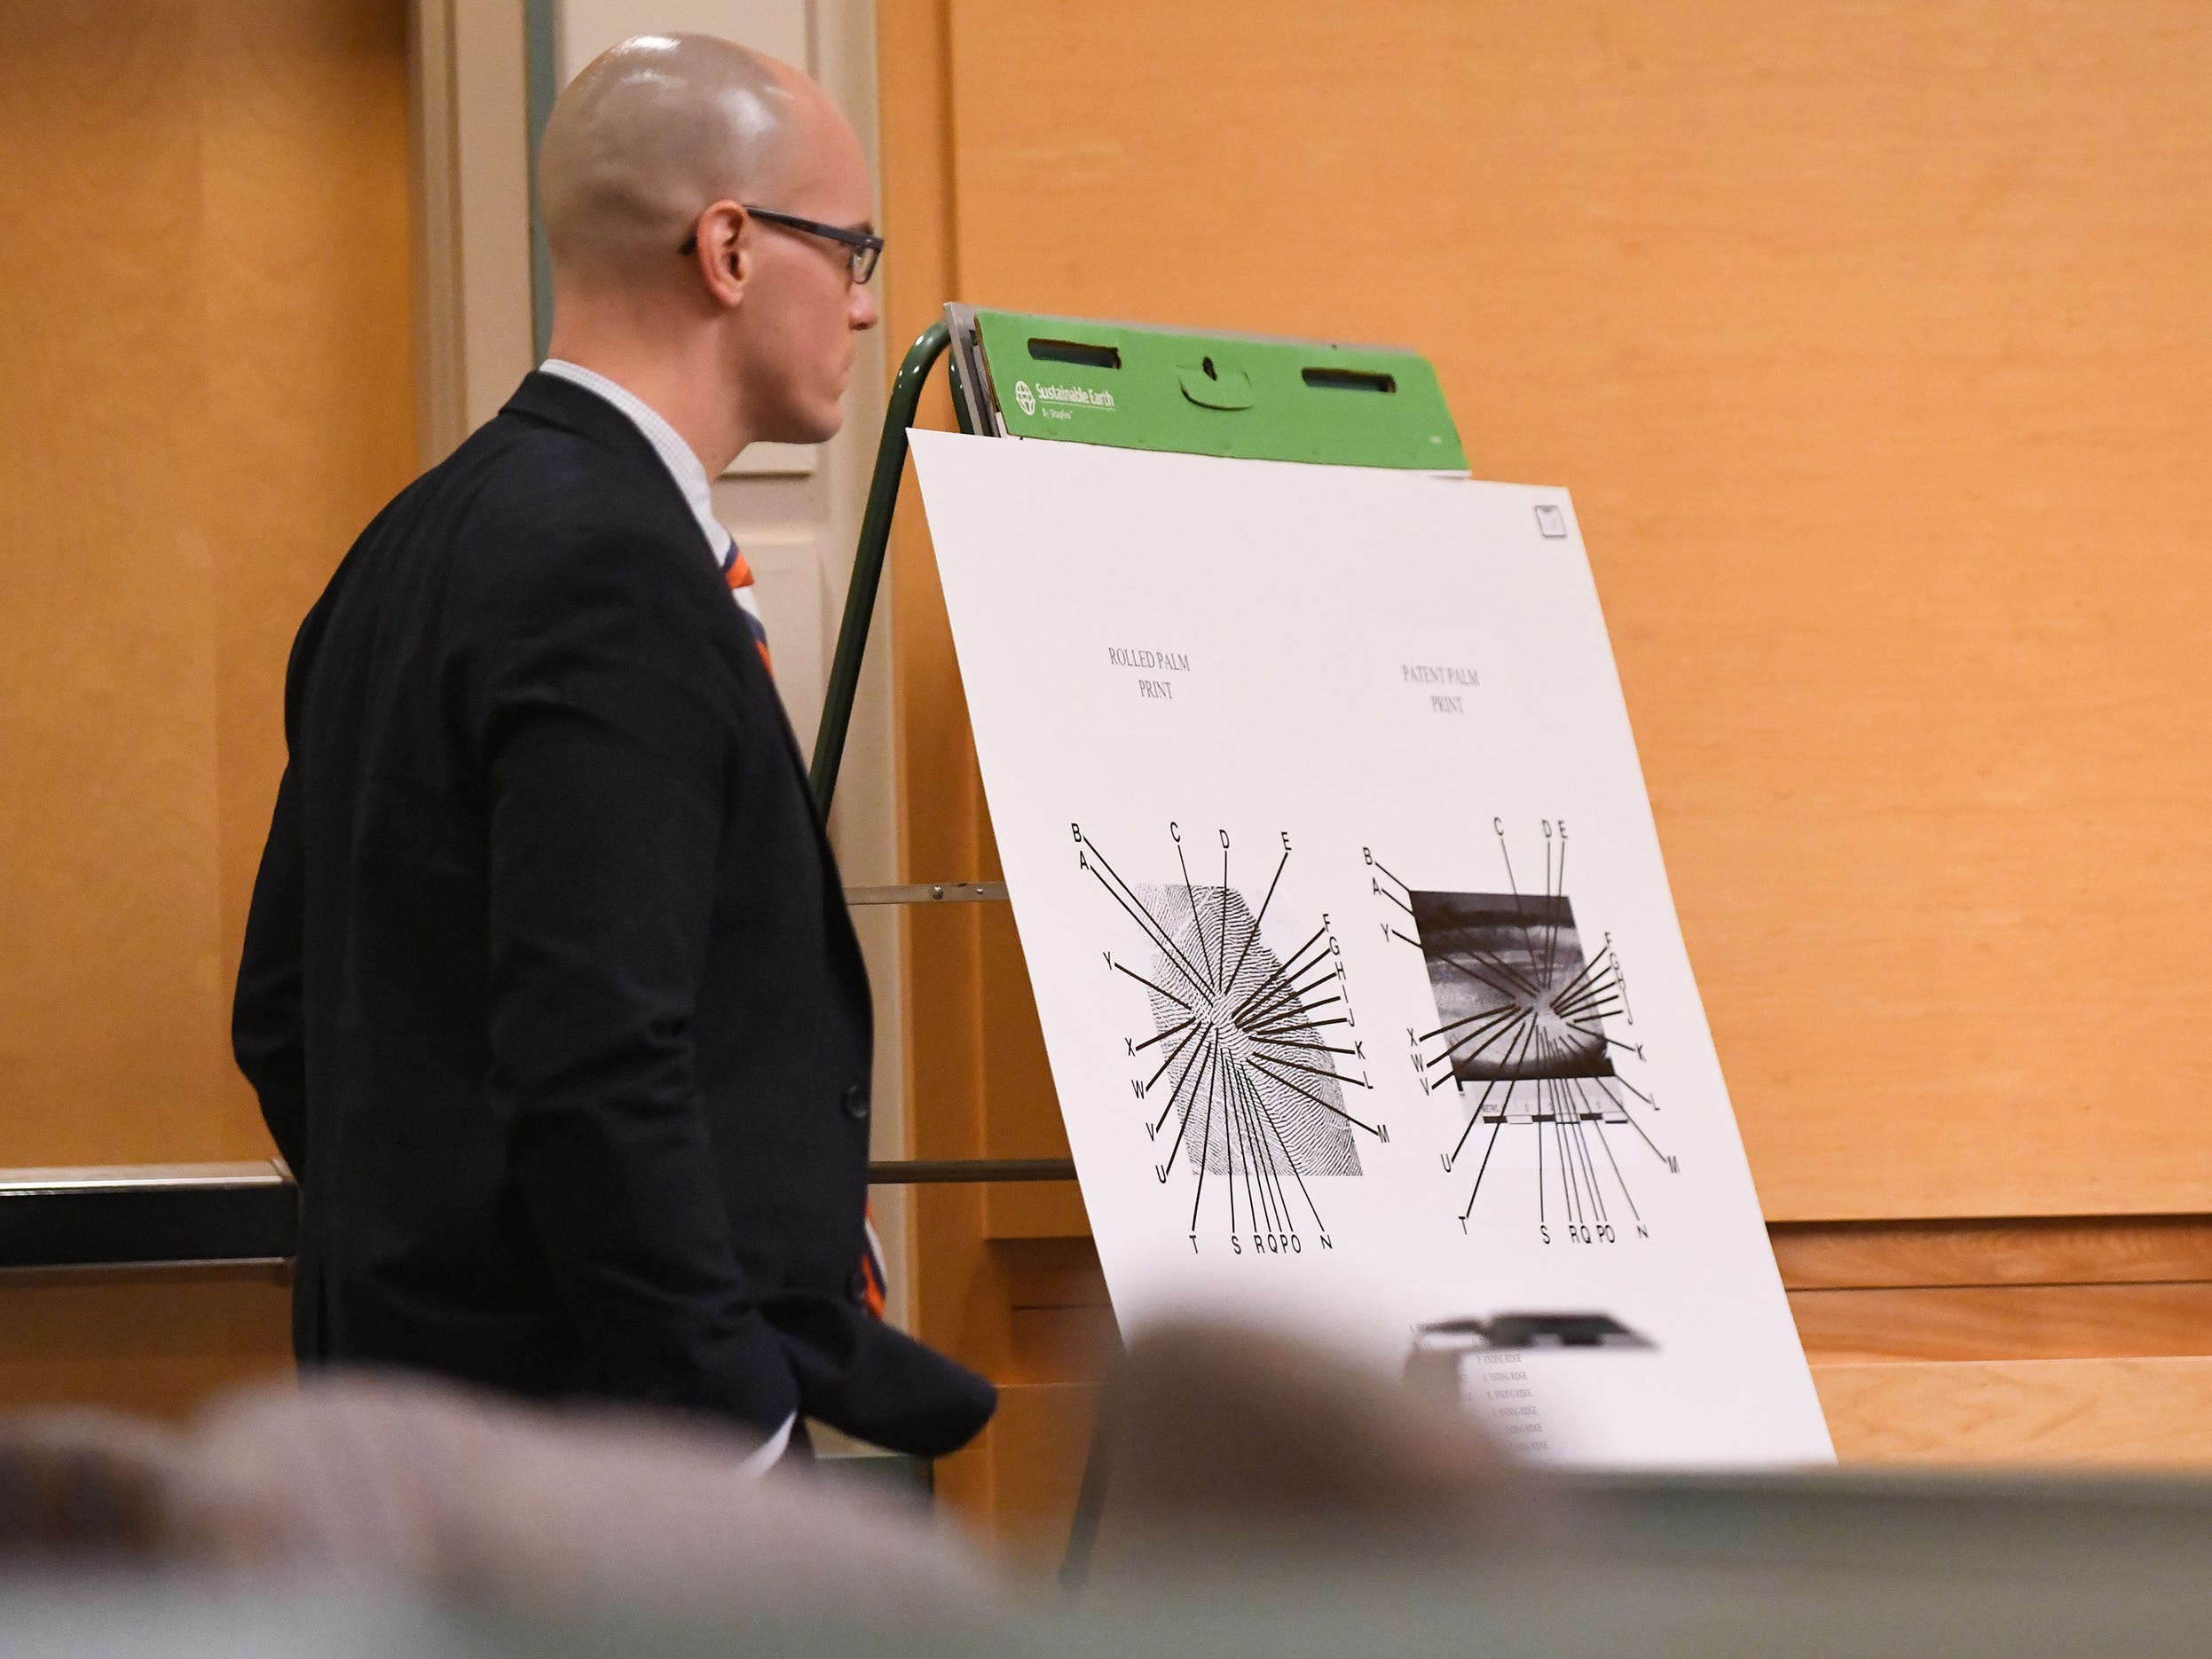 County Assistant Prosecutor Charles Wettstein speaks about a fingerprint analysis report during trial on Thursday, January 3, 2019.